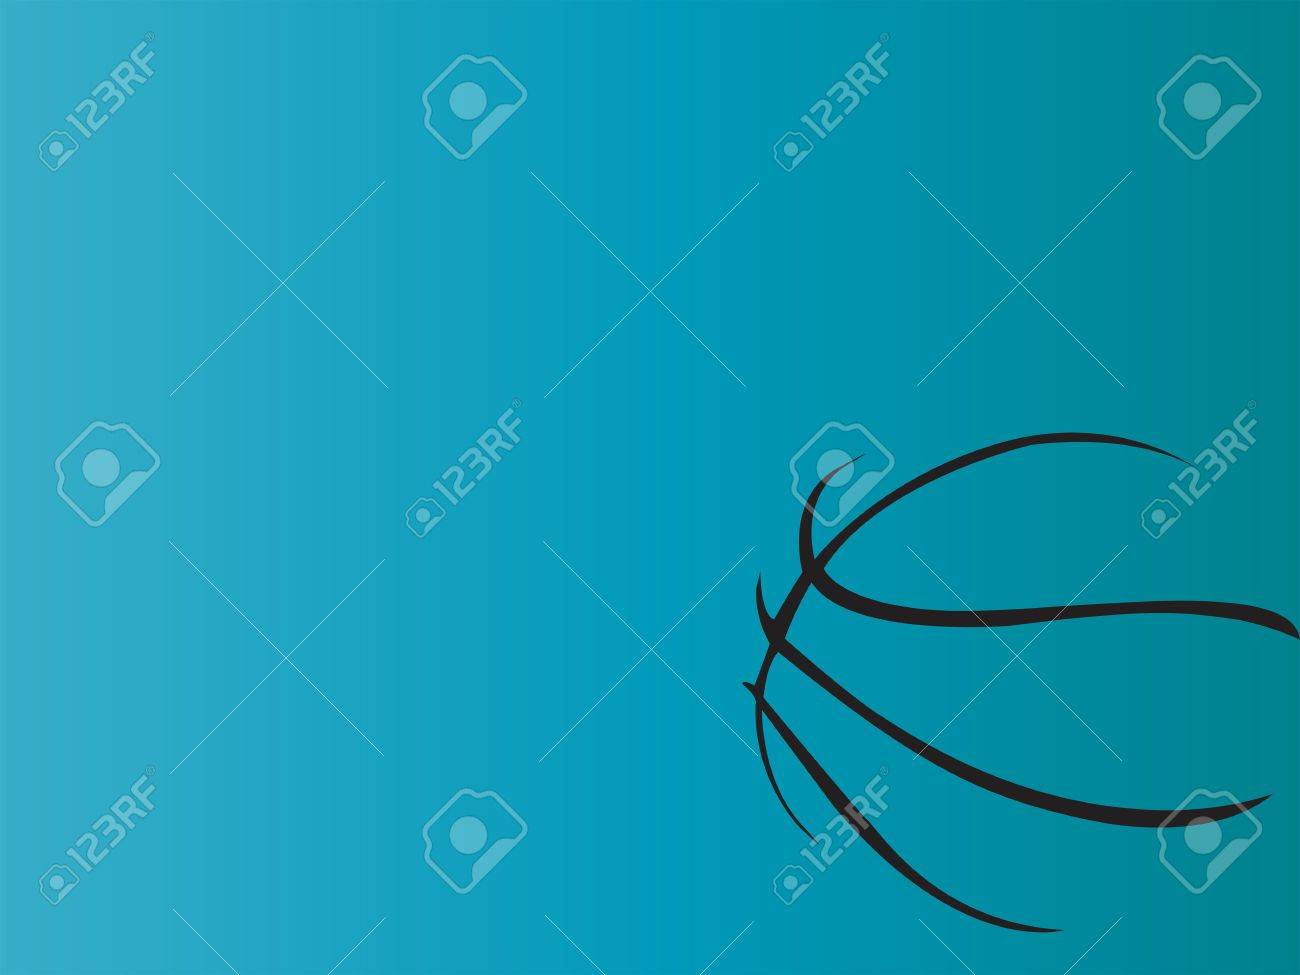 Basketball Stock Photo - 6065100